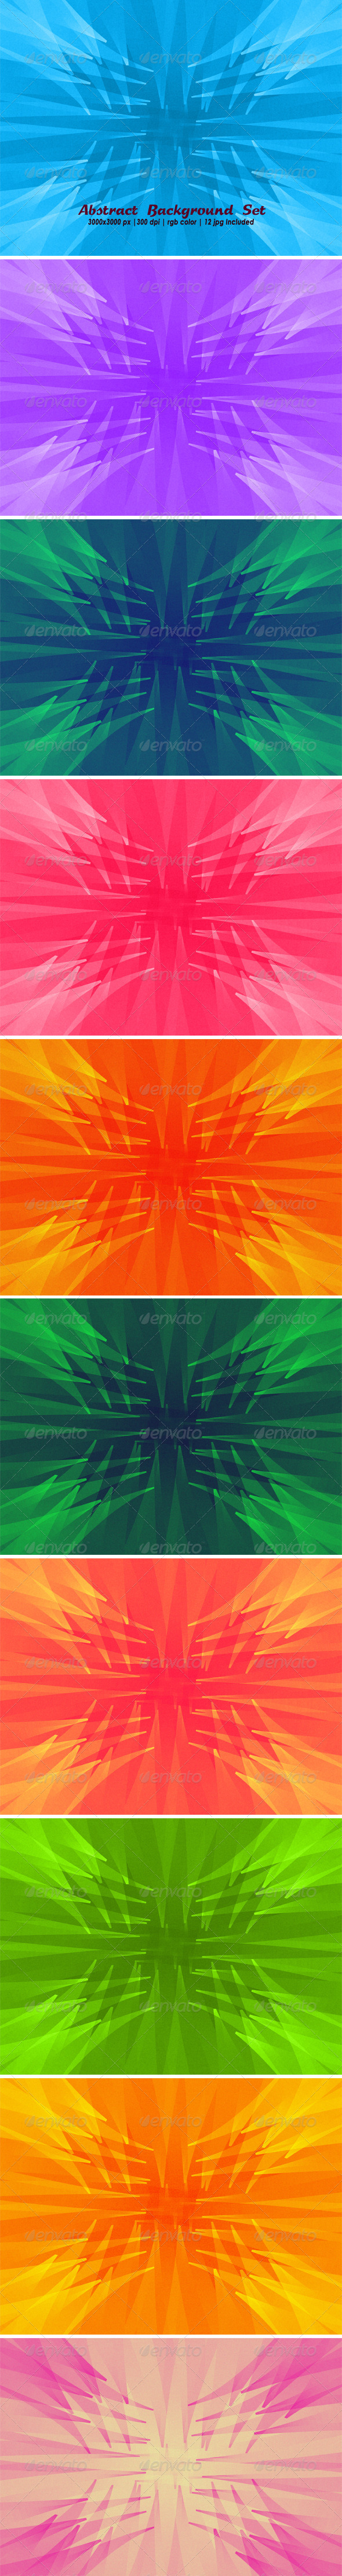 Abstract Background Set - Backgrounds Graphics